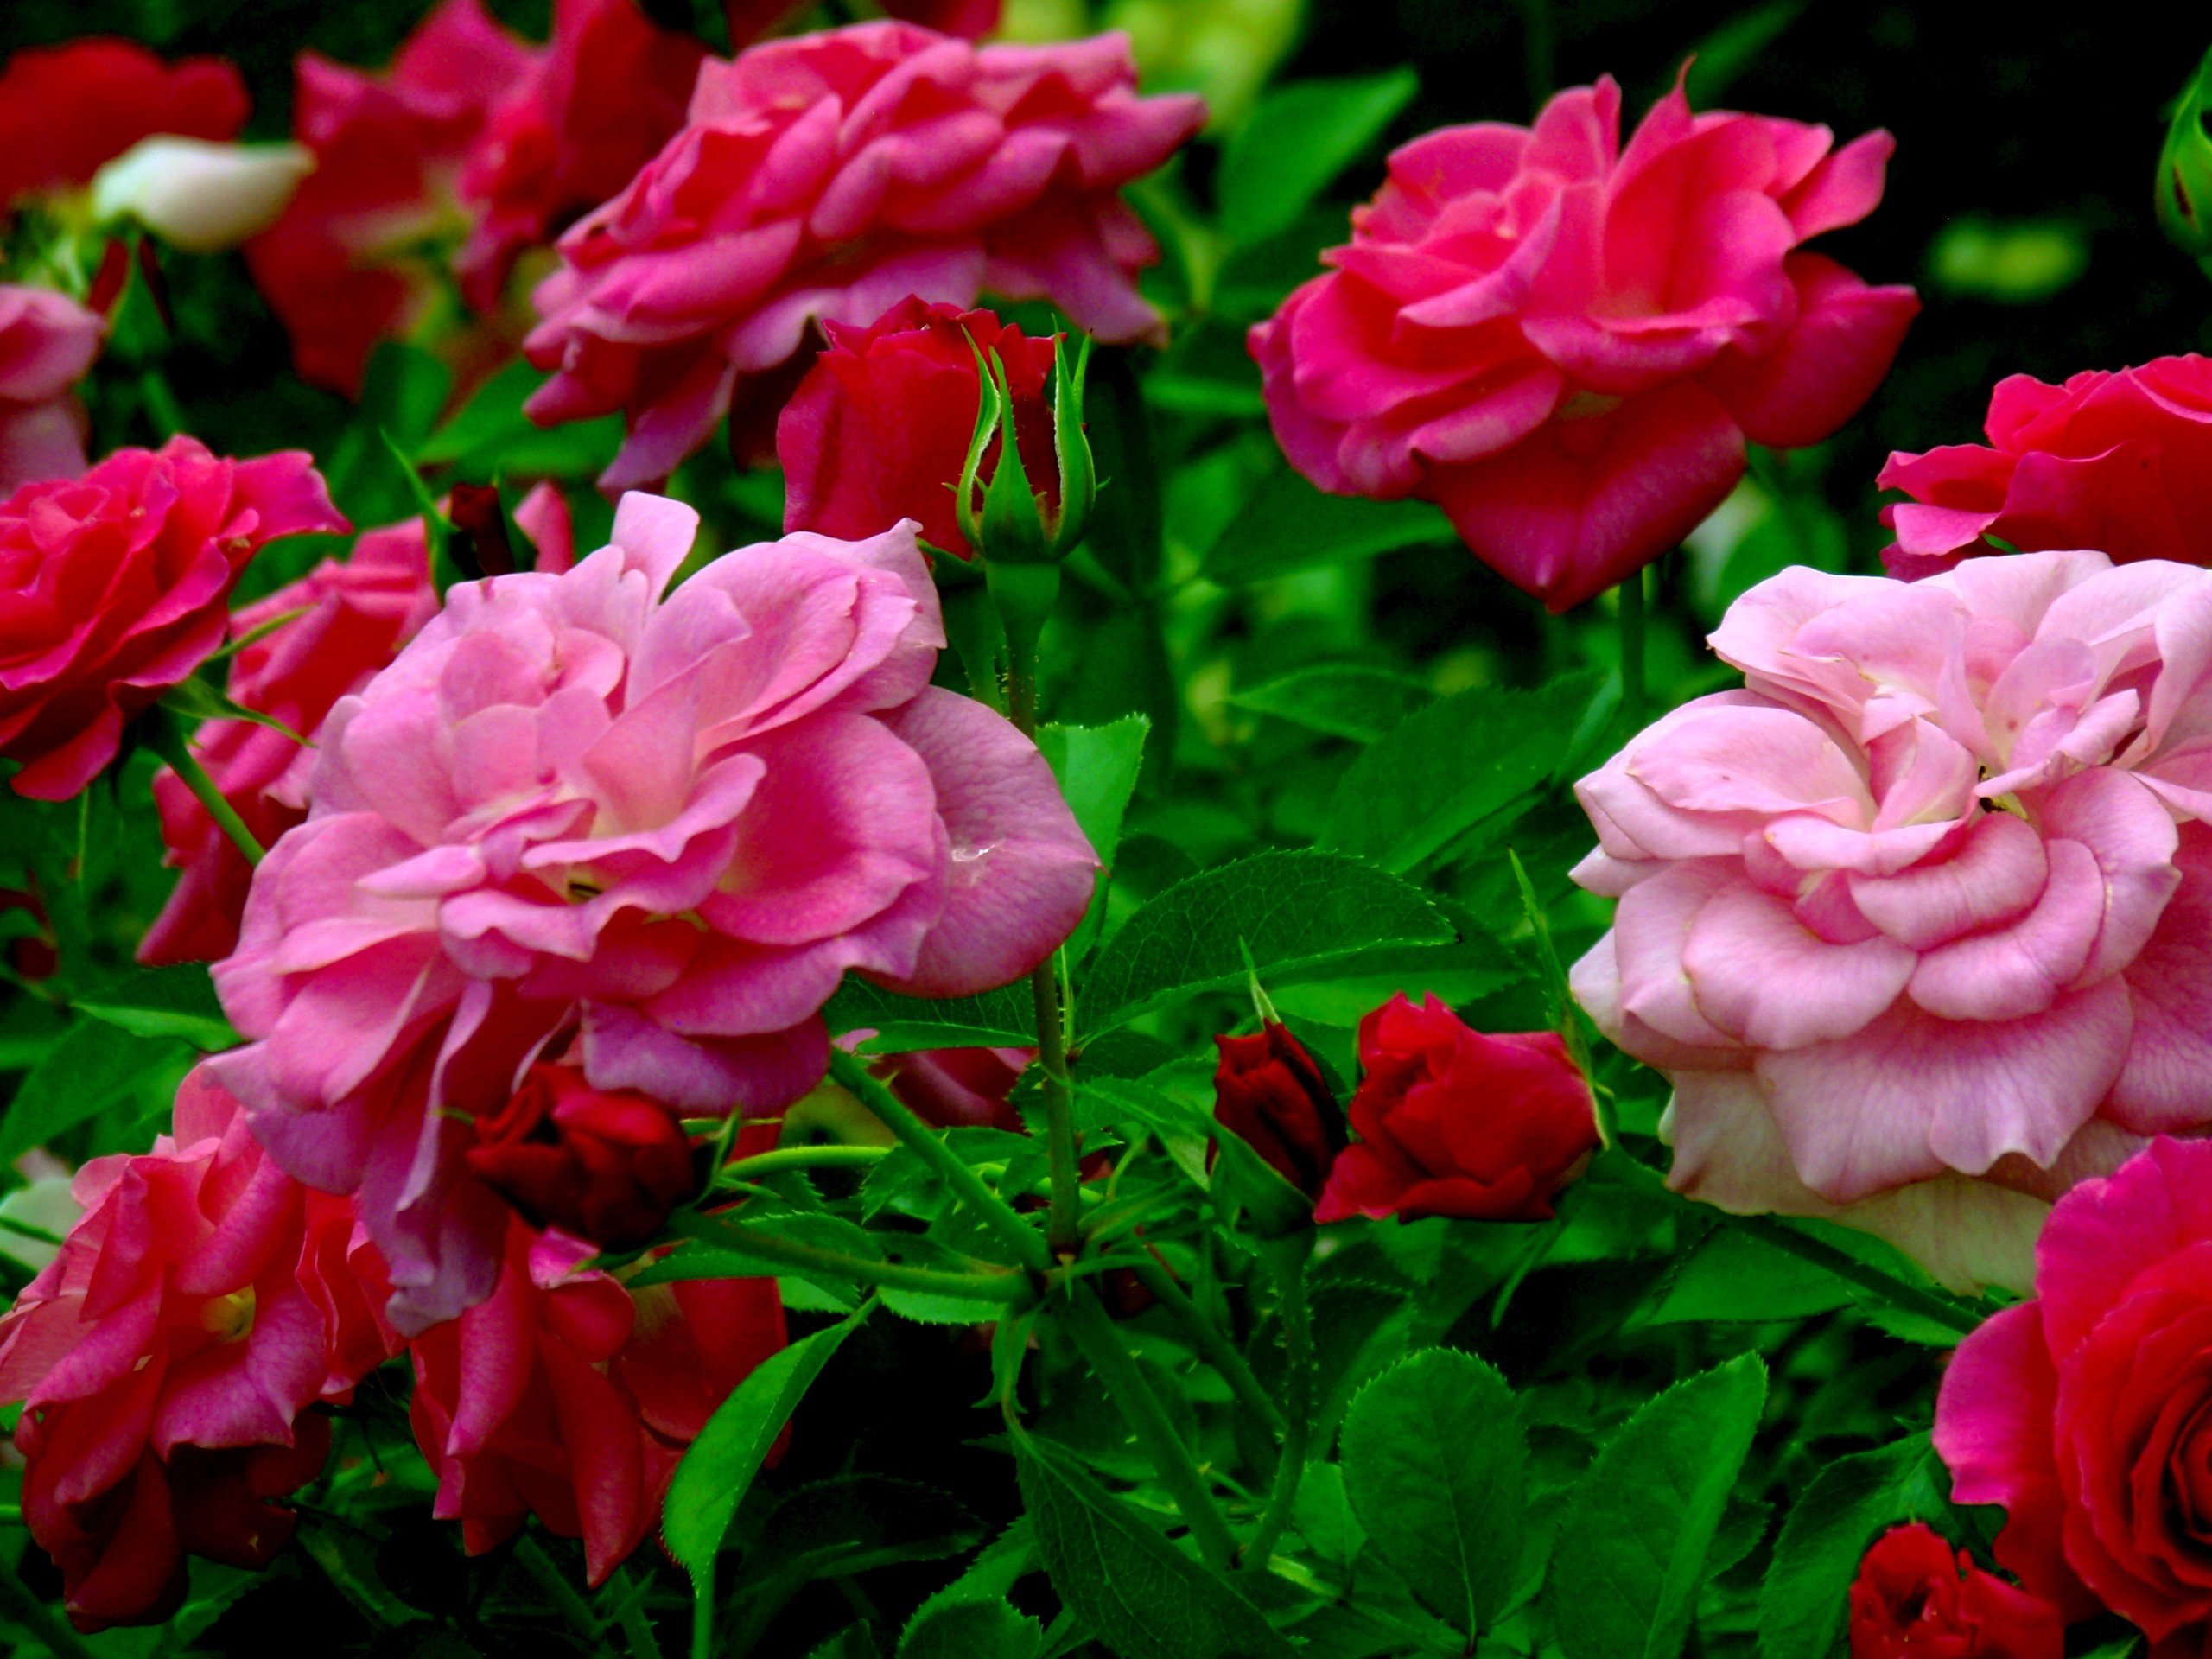 Light And Dark Pink Roses Full HD Wallpaper Background Image